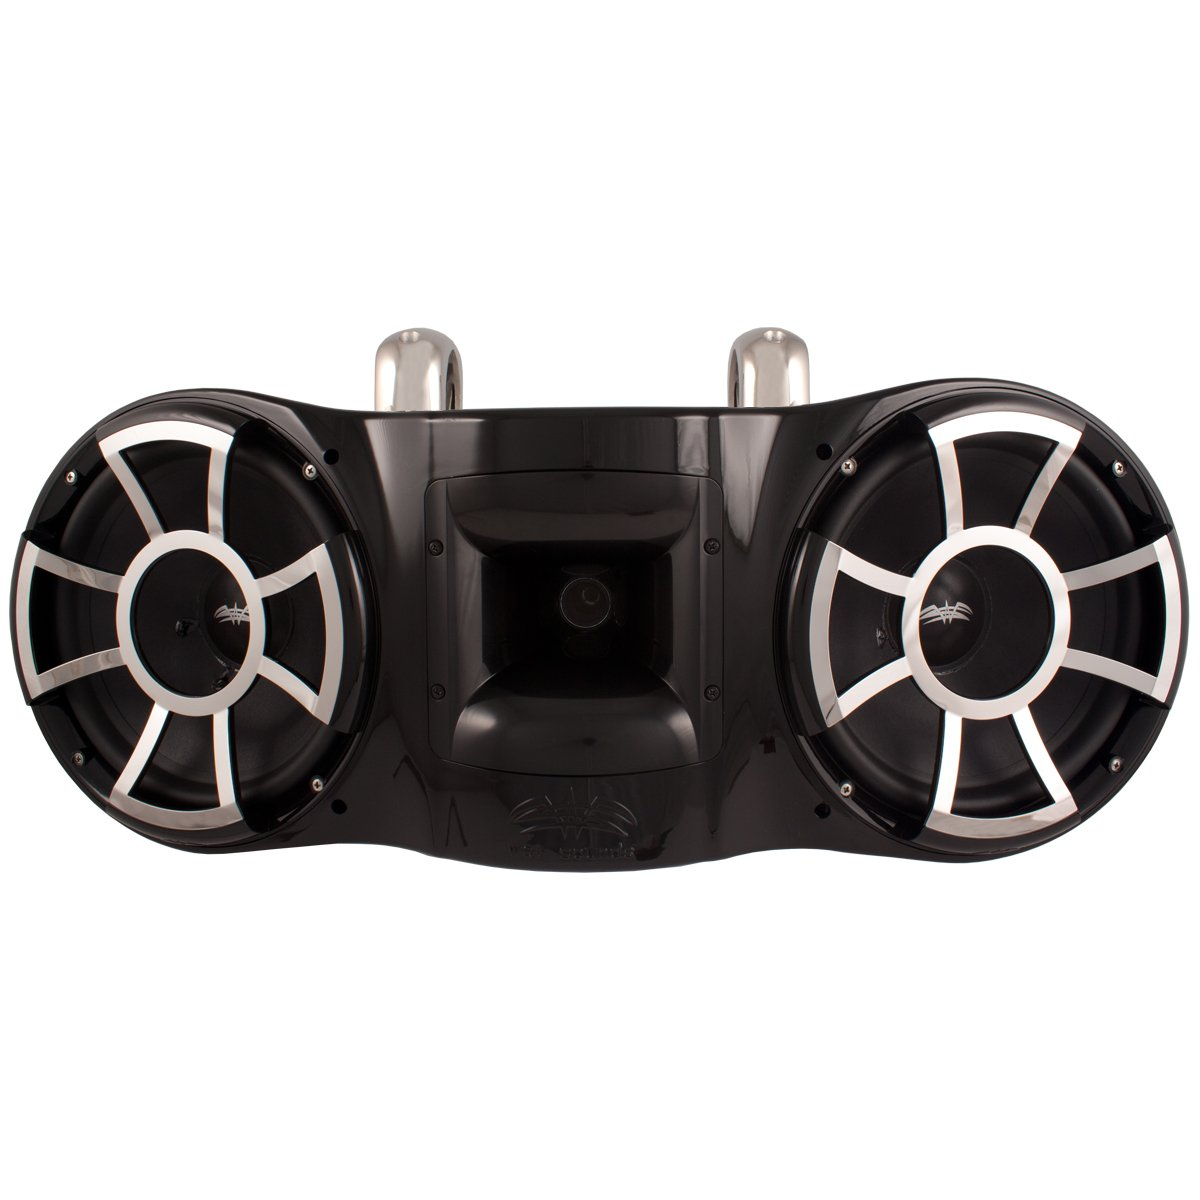 Wet Sounds Revolution Series Dual 10 inch EFG HLCD Tower Speaker - Black w/ Fixed Clamp